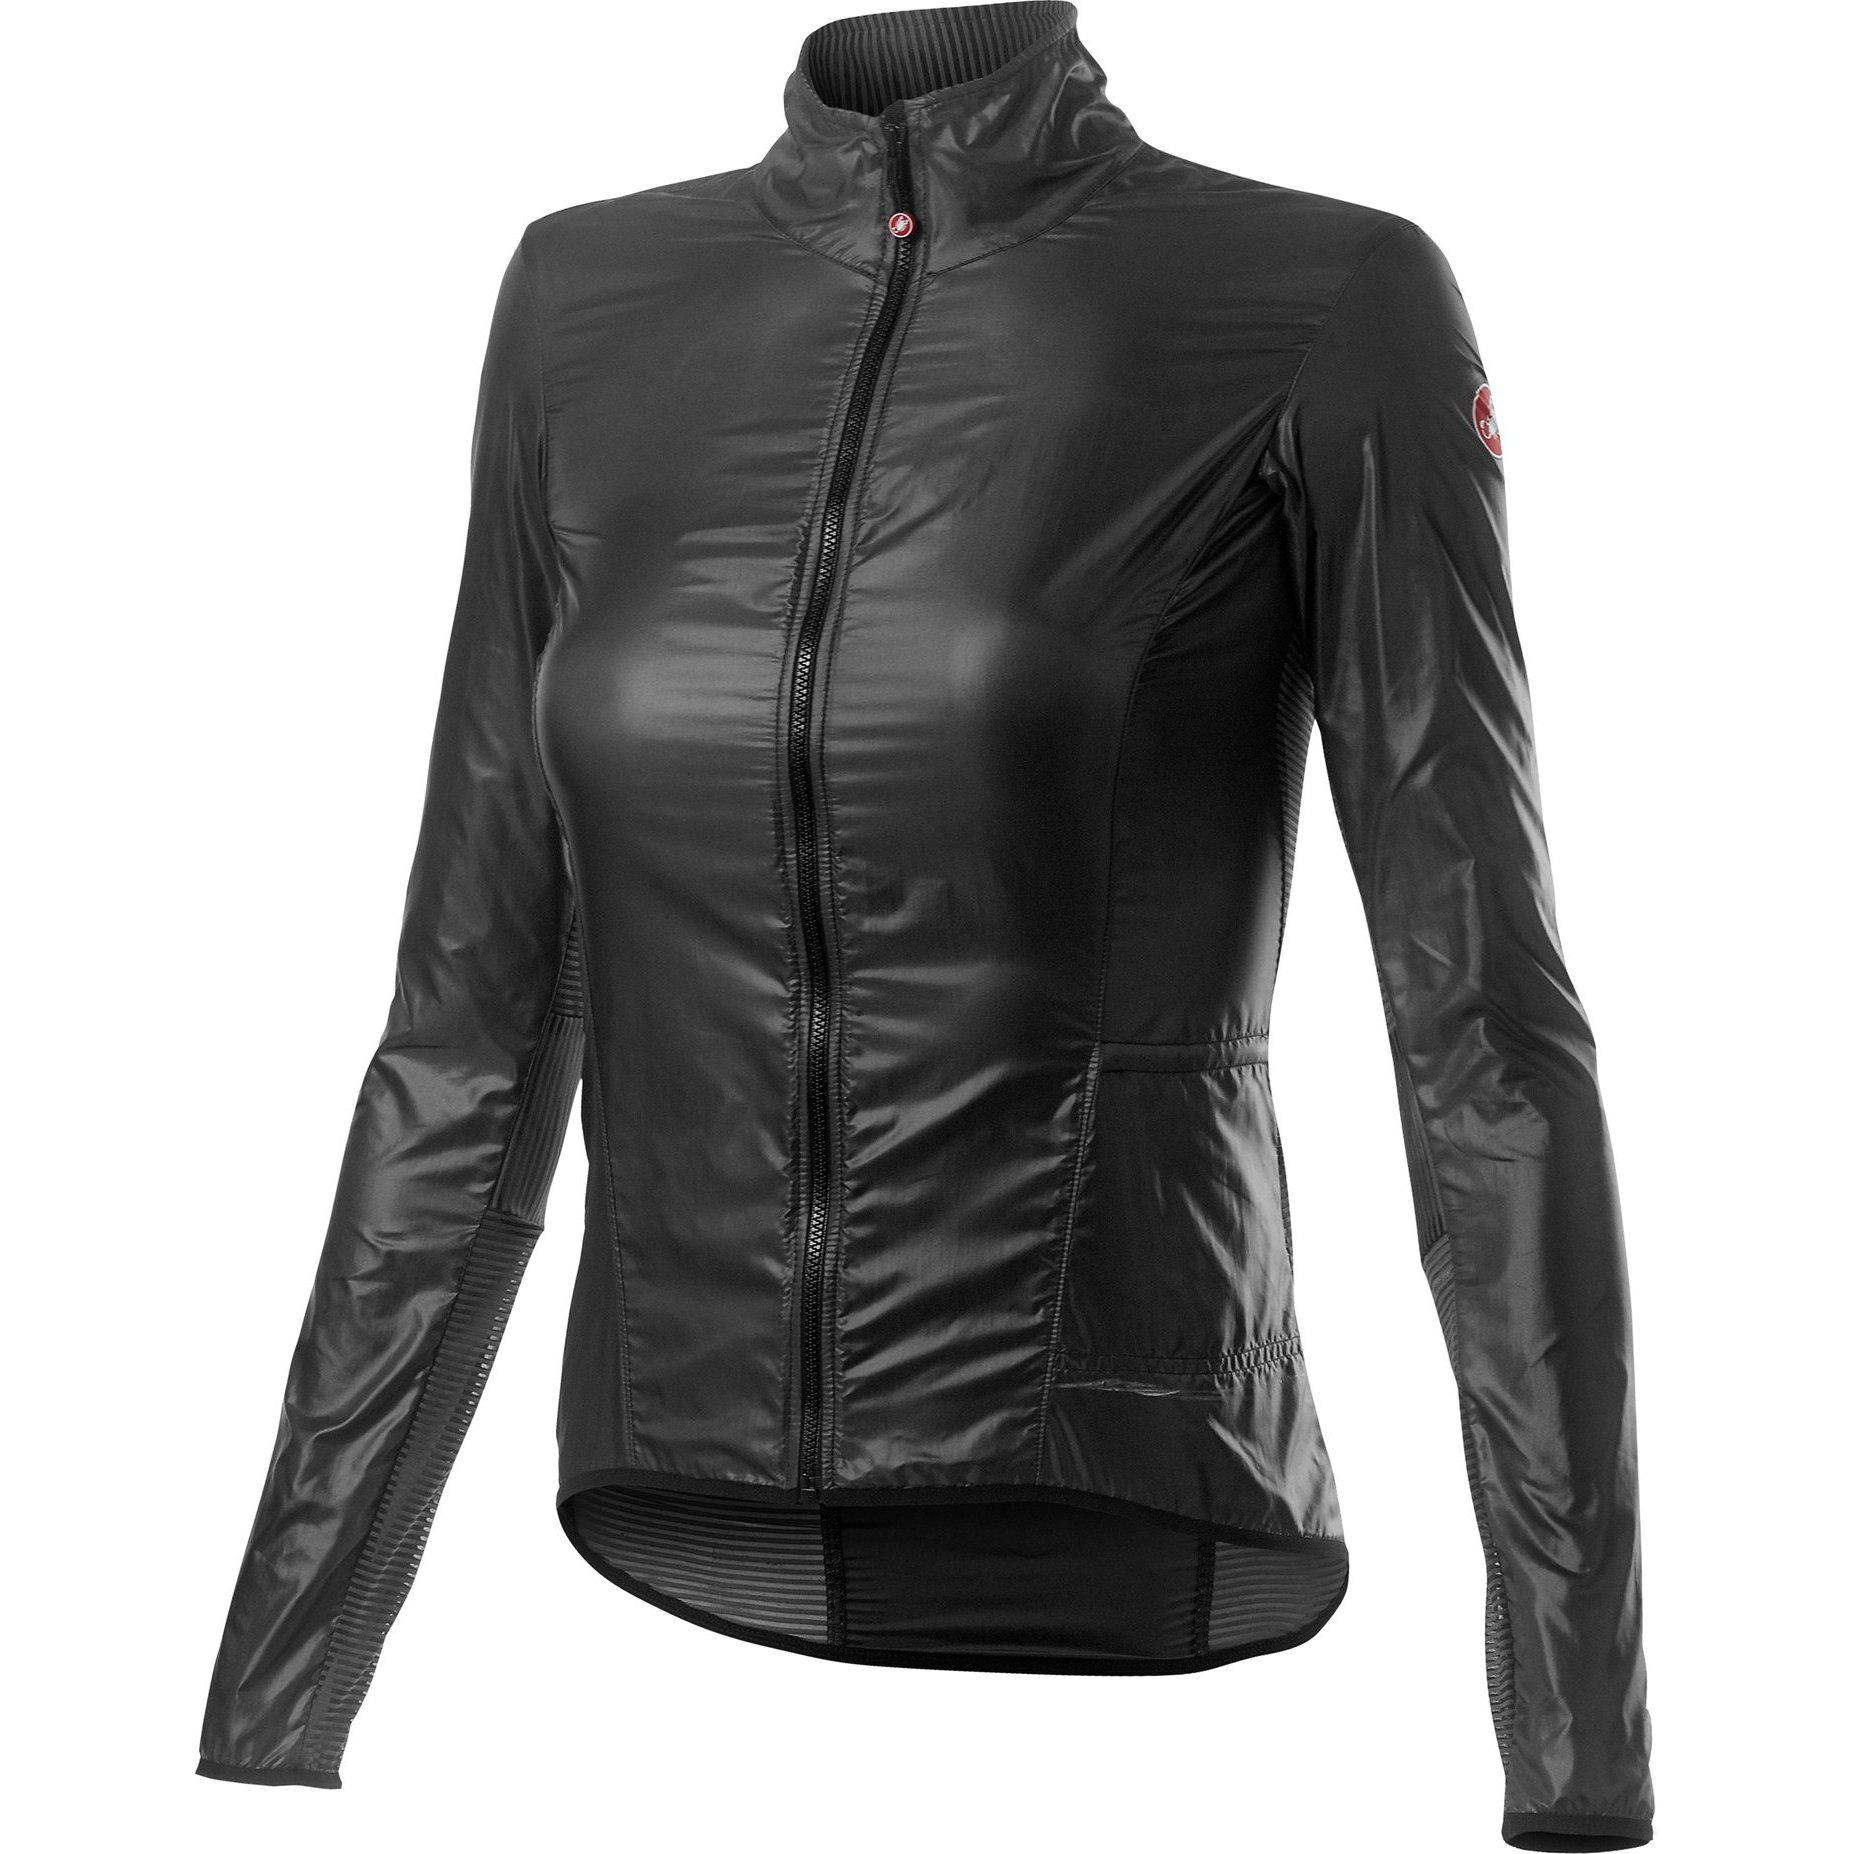 Castelli-Castelli Aria Shell Women's Jacket-Dark Gray-XS-CS200890301-saddleback-elite-performance-cycling